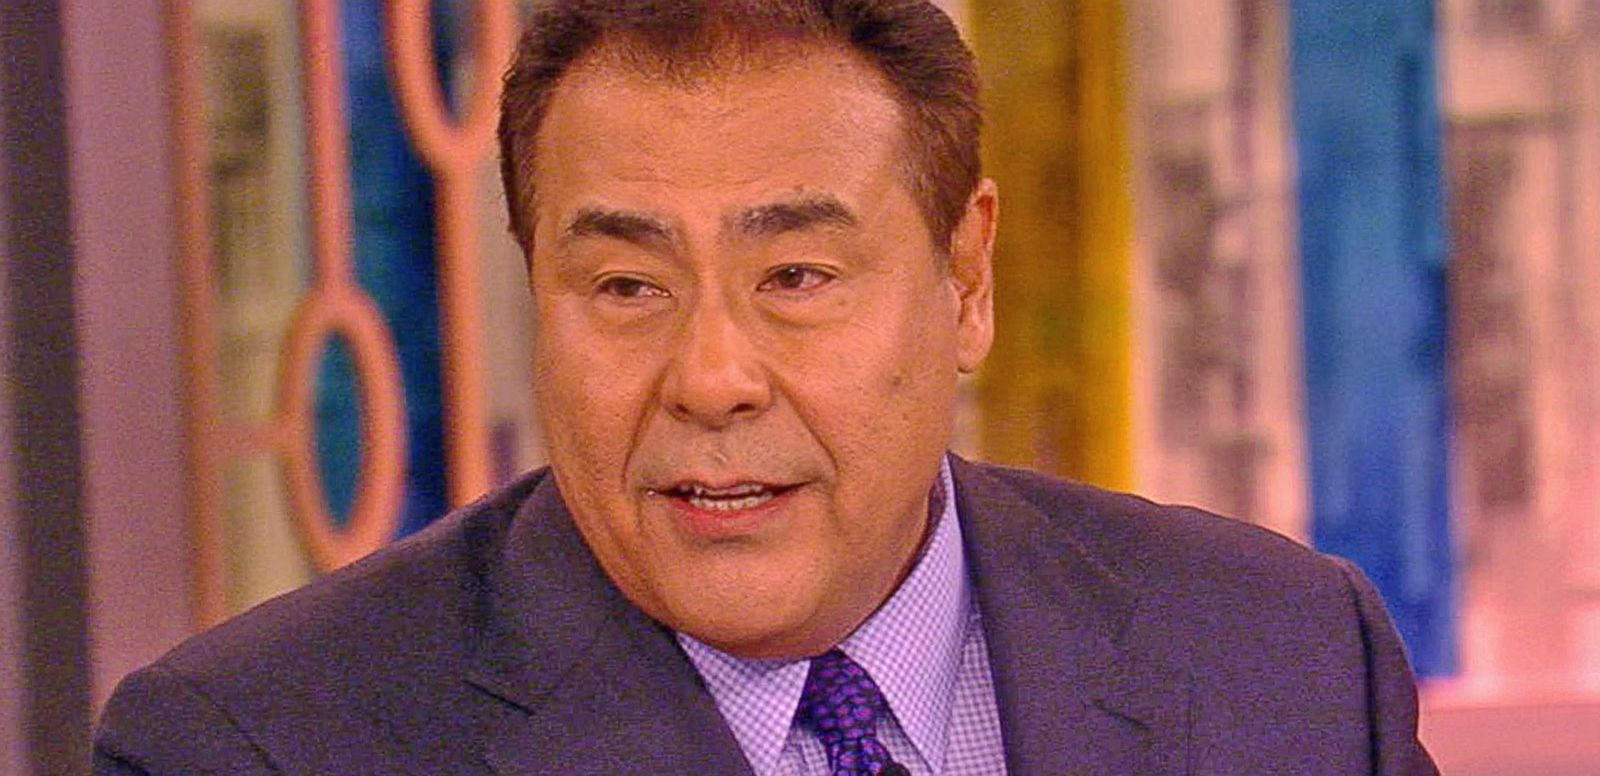 VIDEO: 'The View' Discusses 'What Would You Do?' With John Quinones